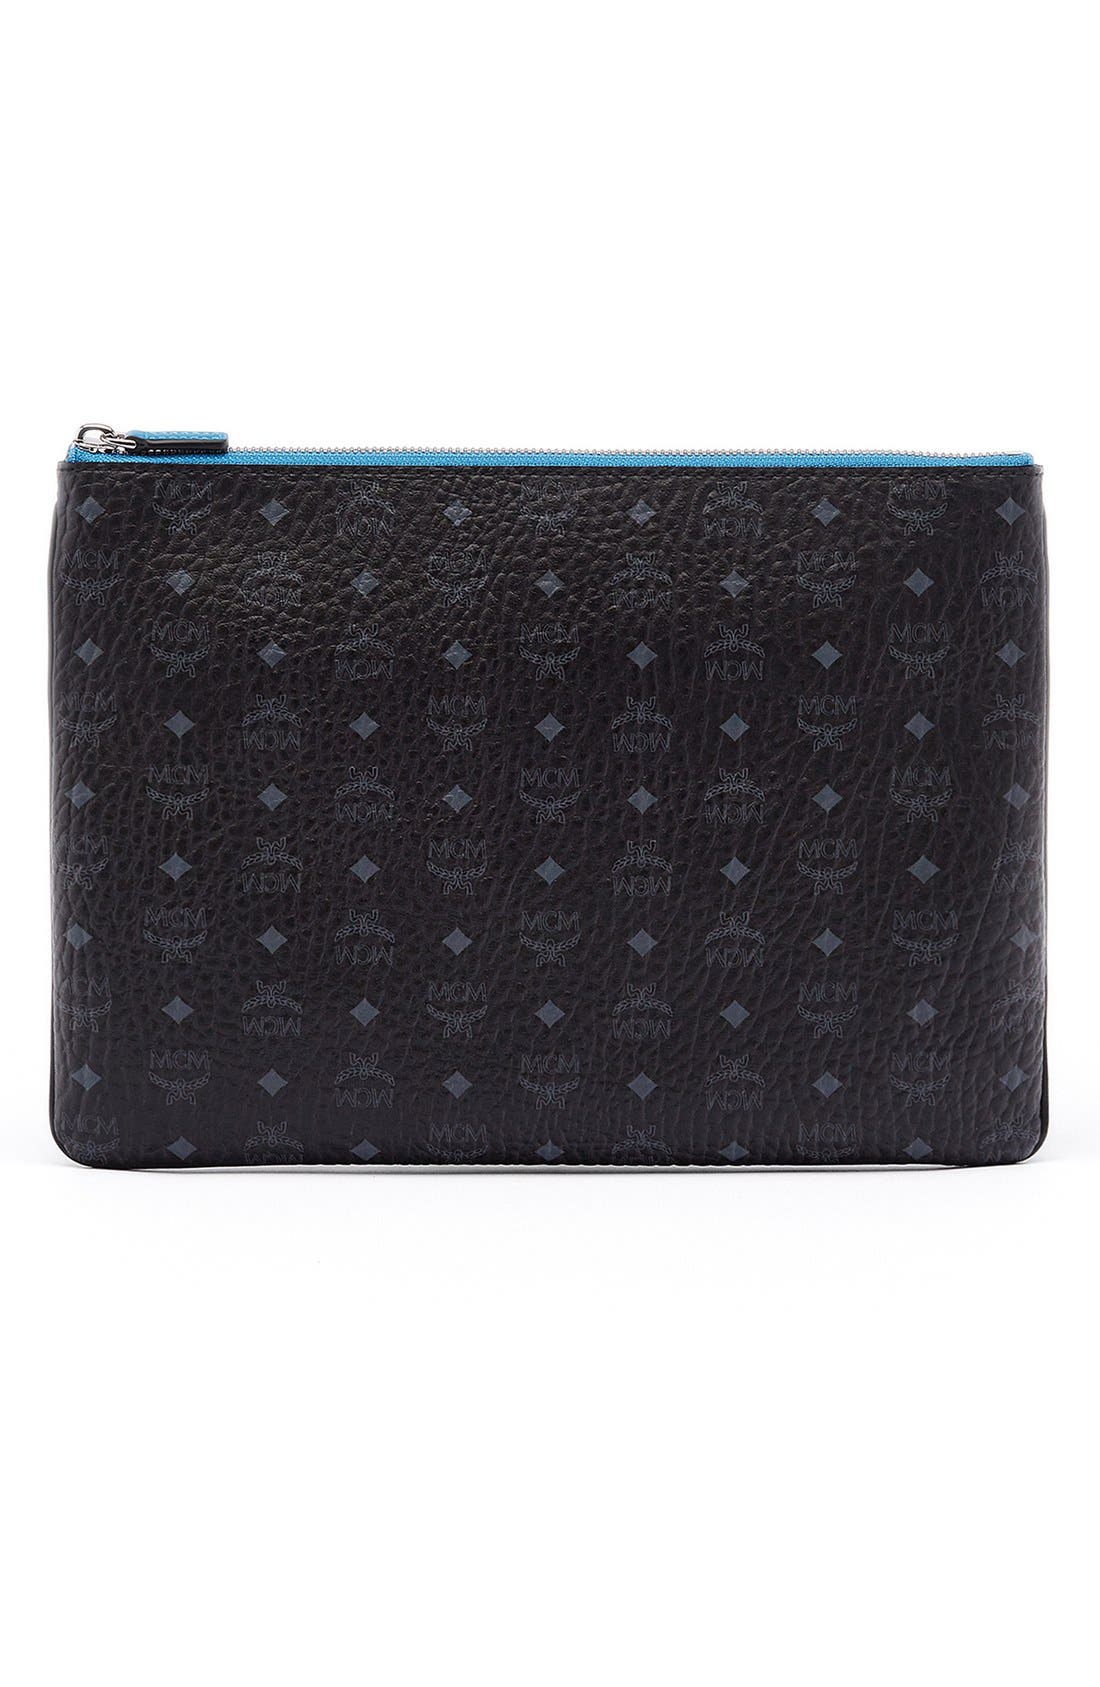 MCM Heritage Convertible Coated Canvas Zip Pouch